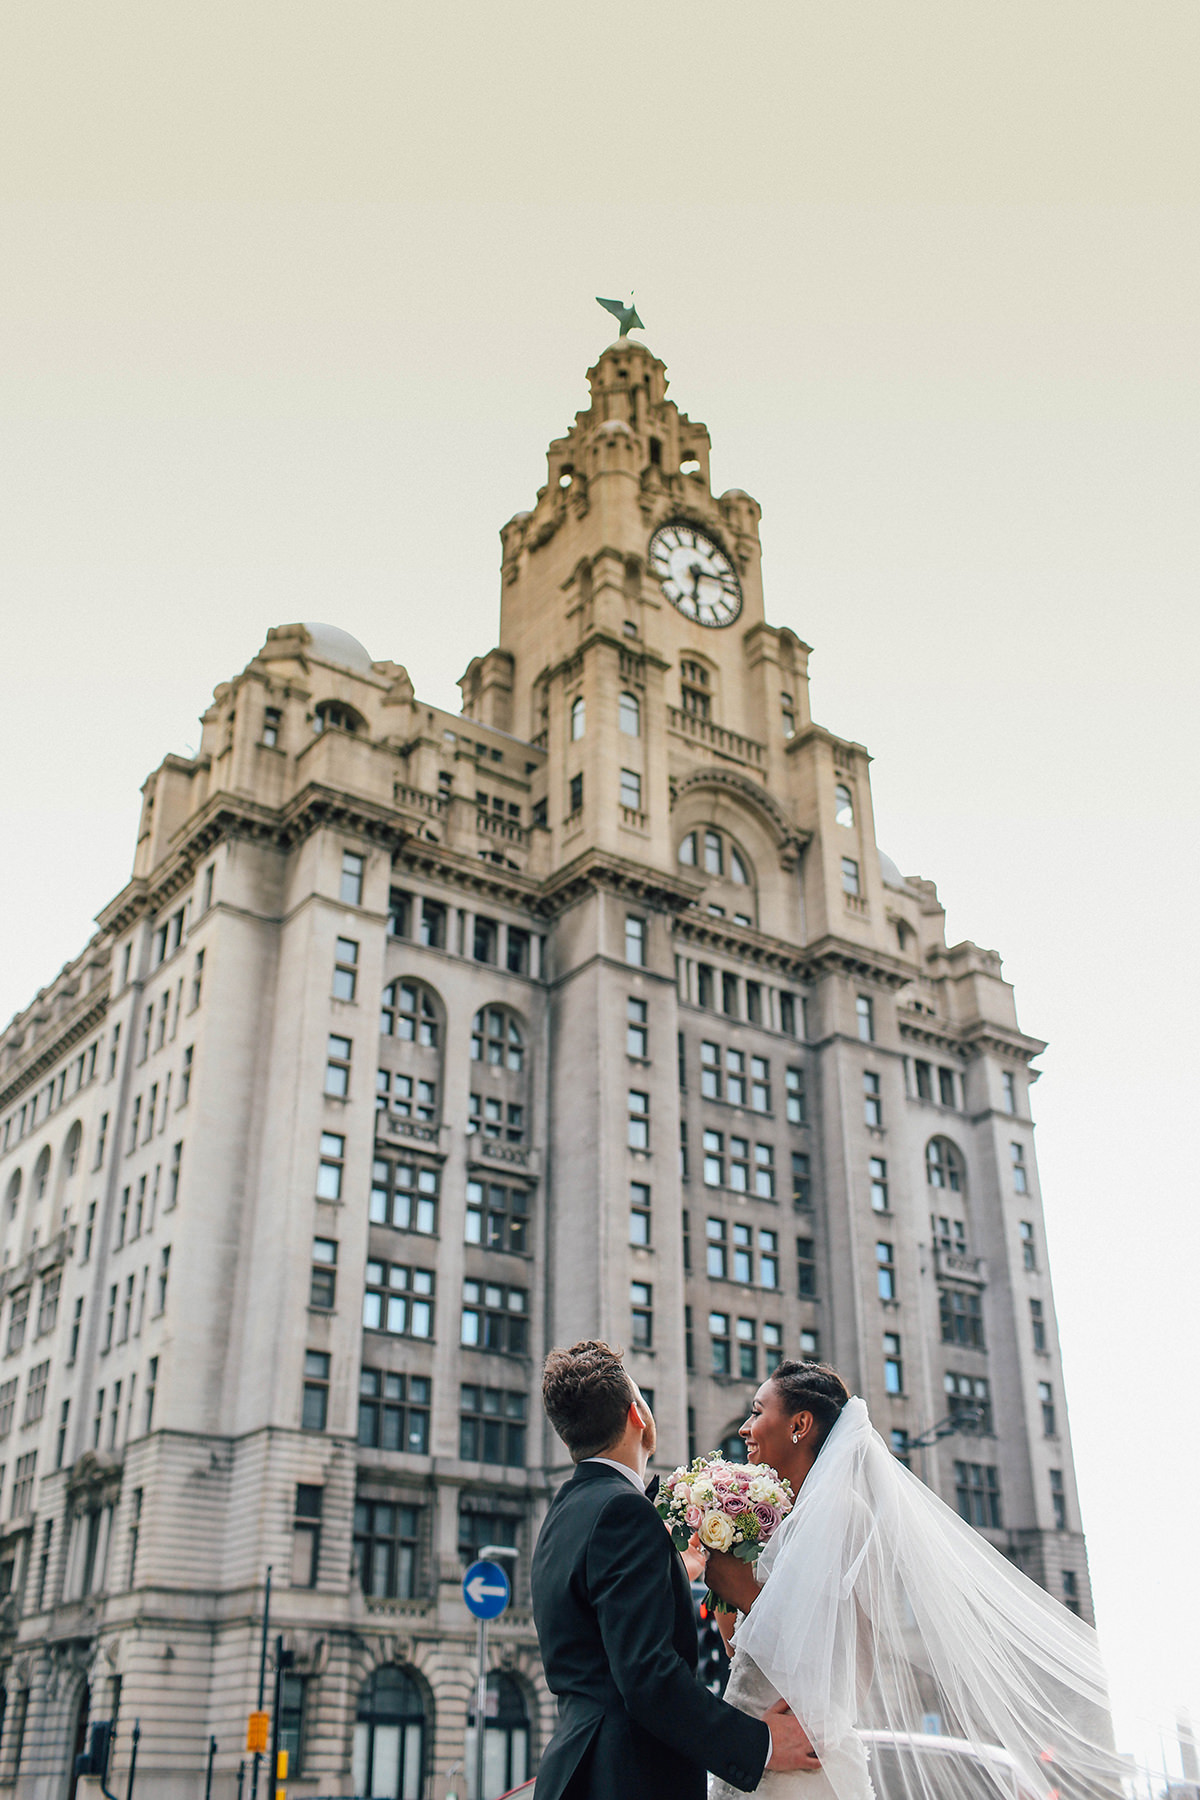 Alternative and Creative Photography Manchester and Cheshire Wedding Photographer Oh Me Oh My Wedding Photography Liverpool